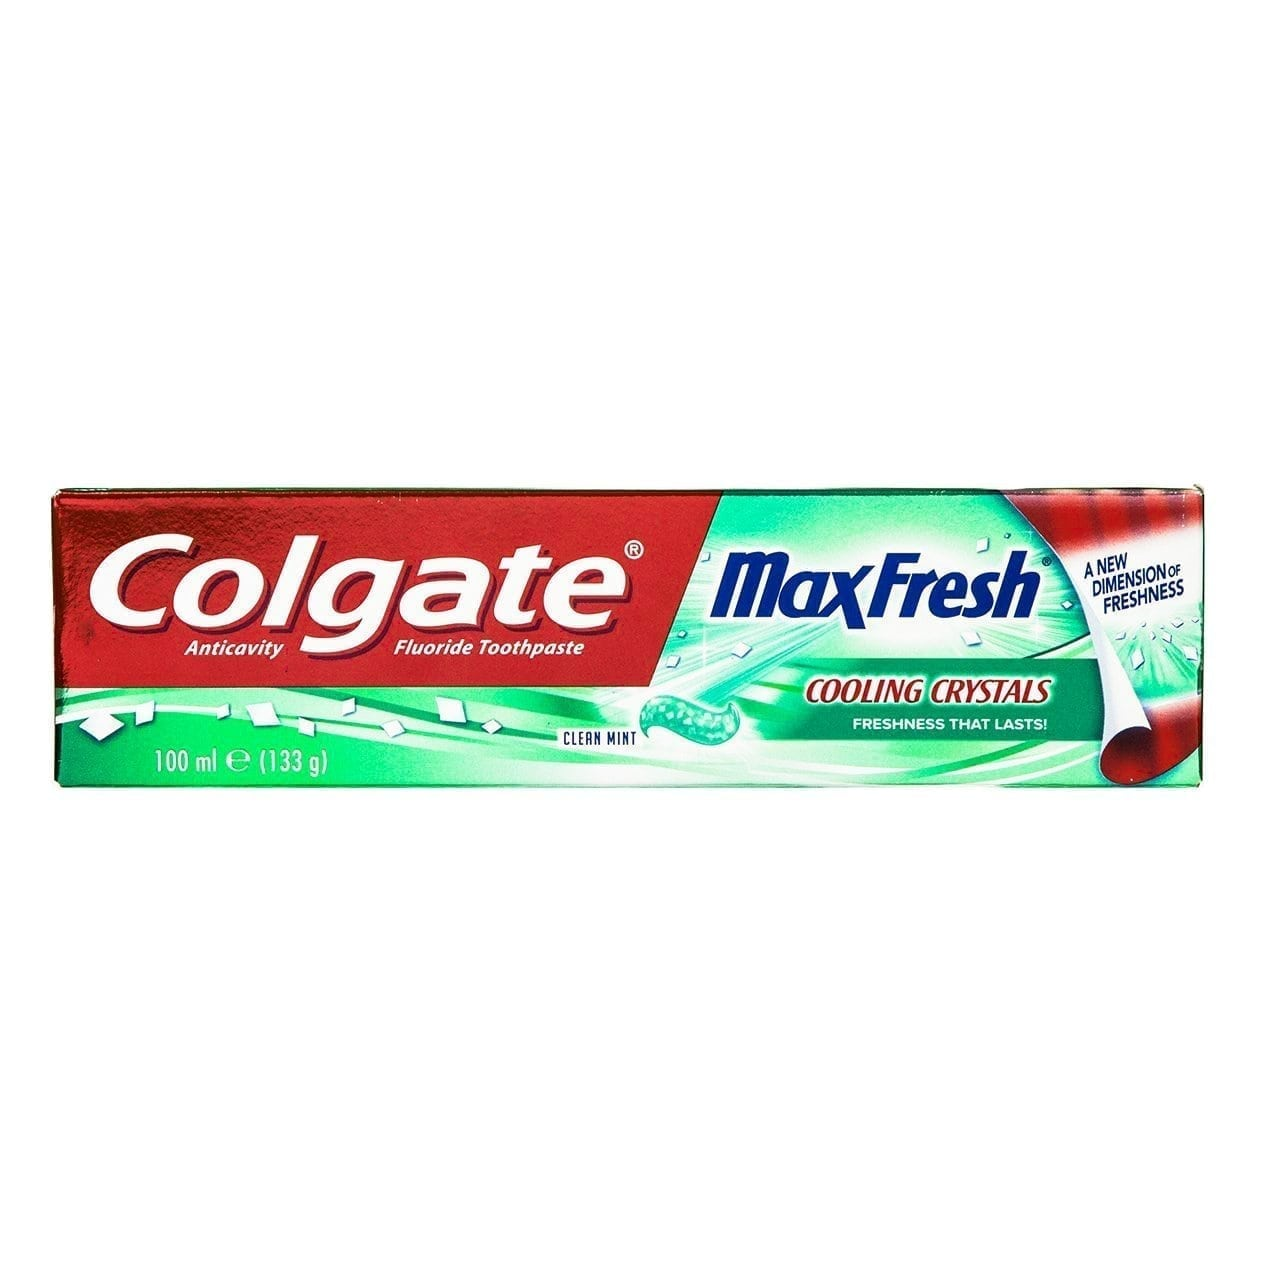 Colgate Max Fresh Whitening Toothpaste with Breath Strips - Clean Mint